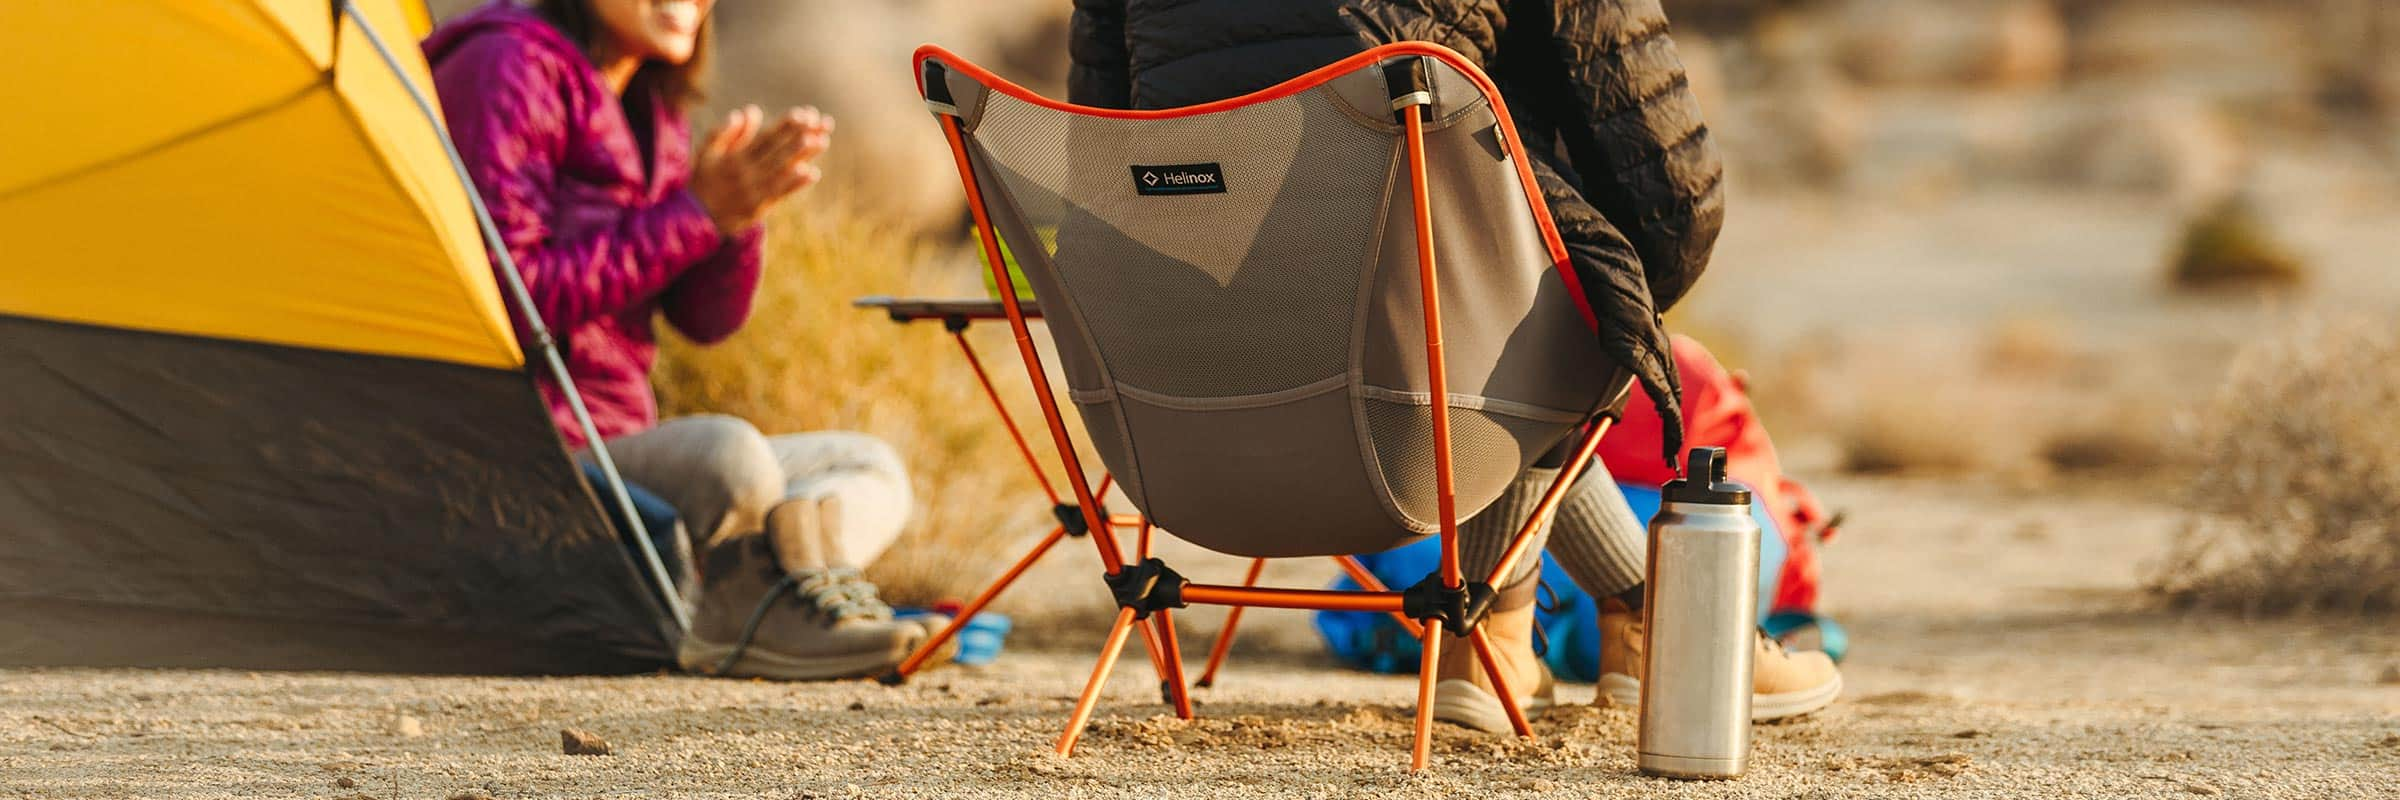 Helinox Chair One Review: Camp-Ready!